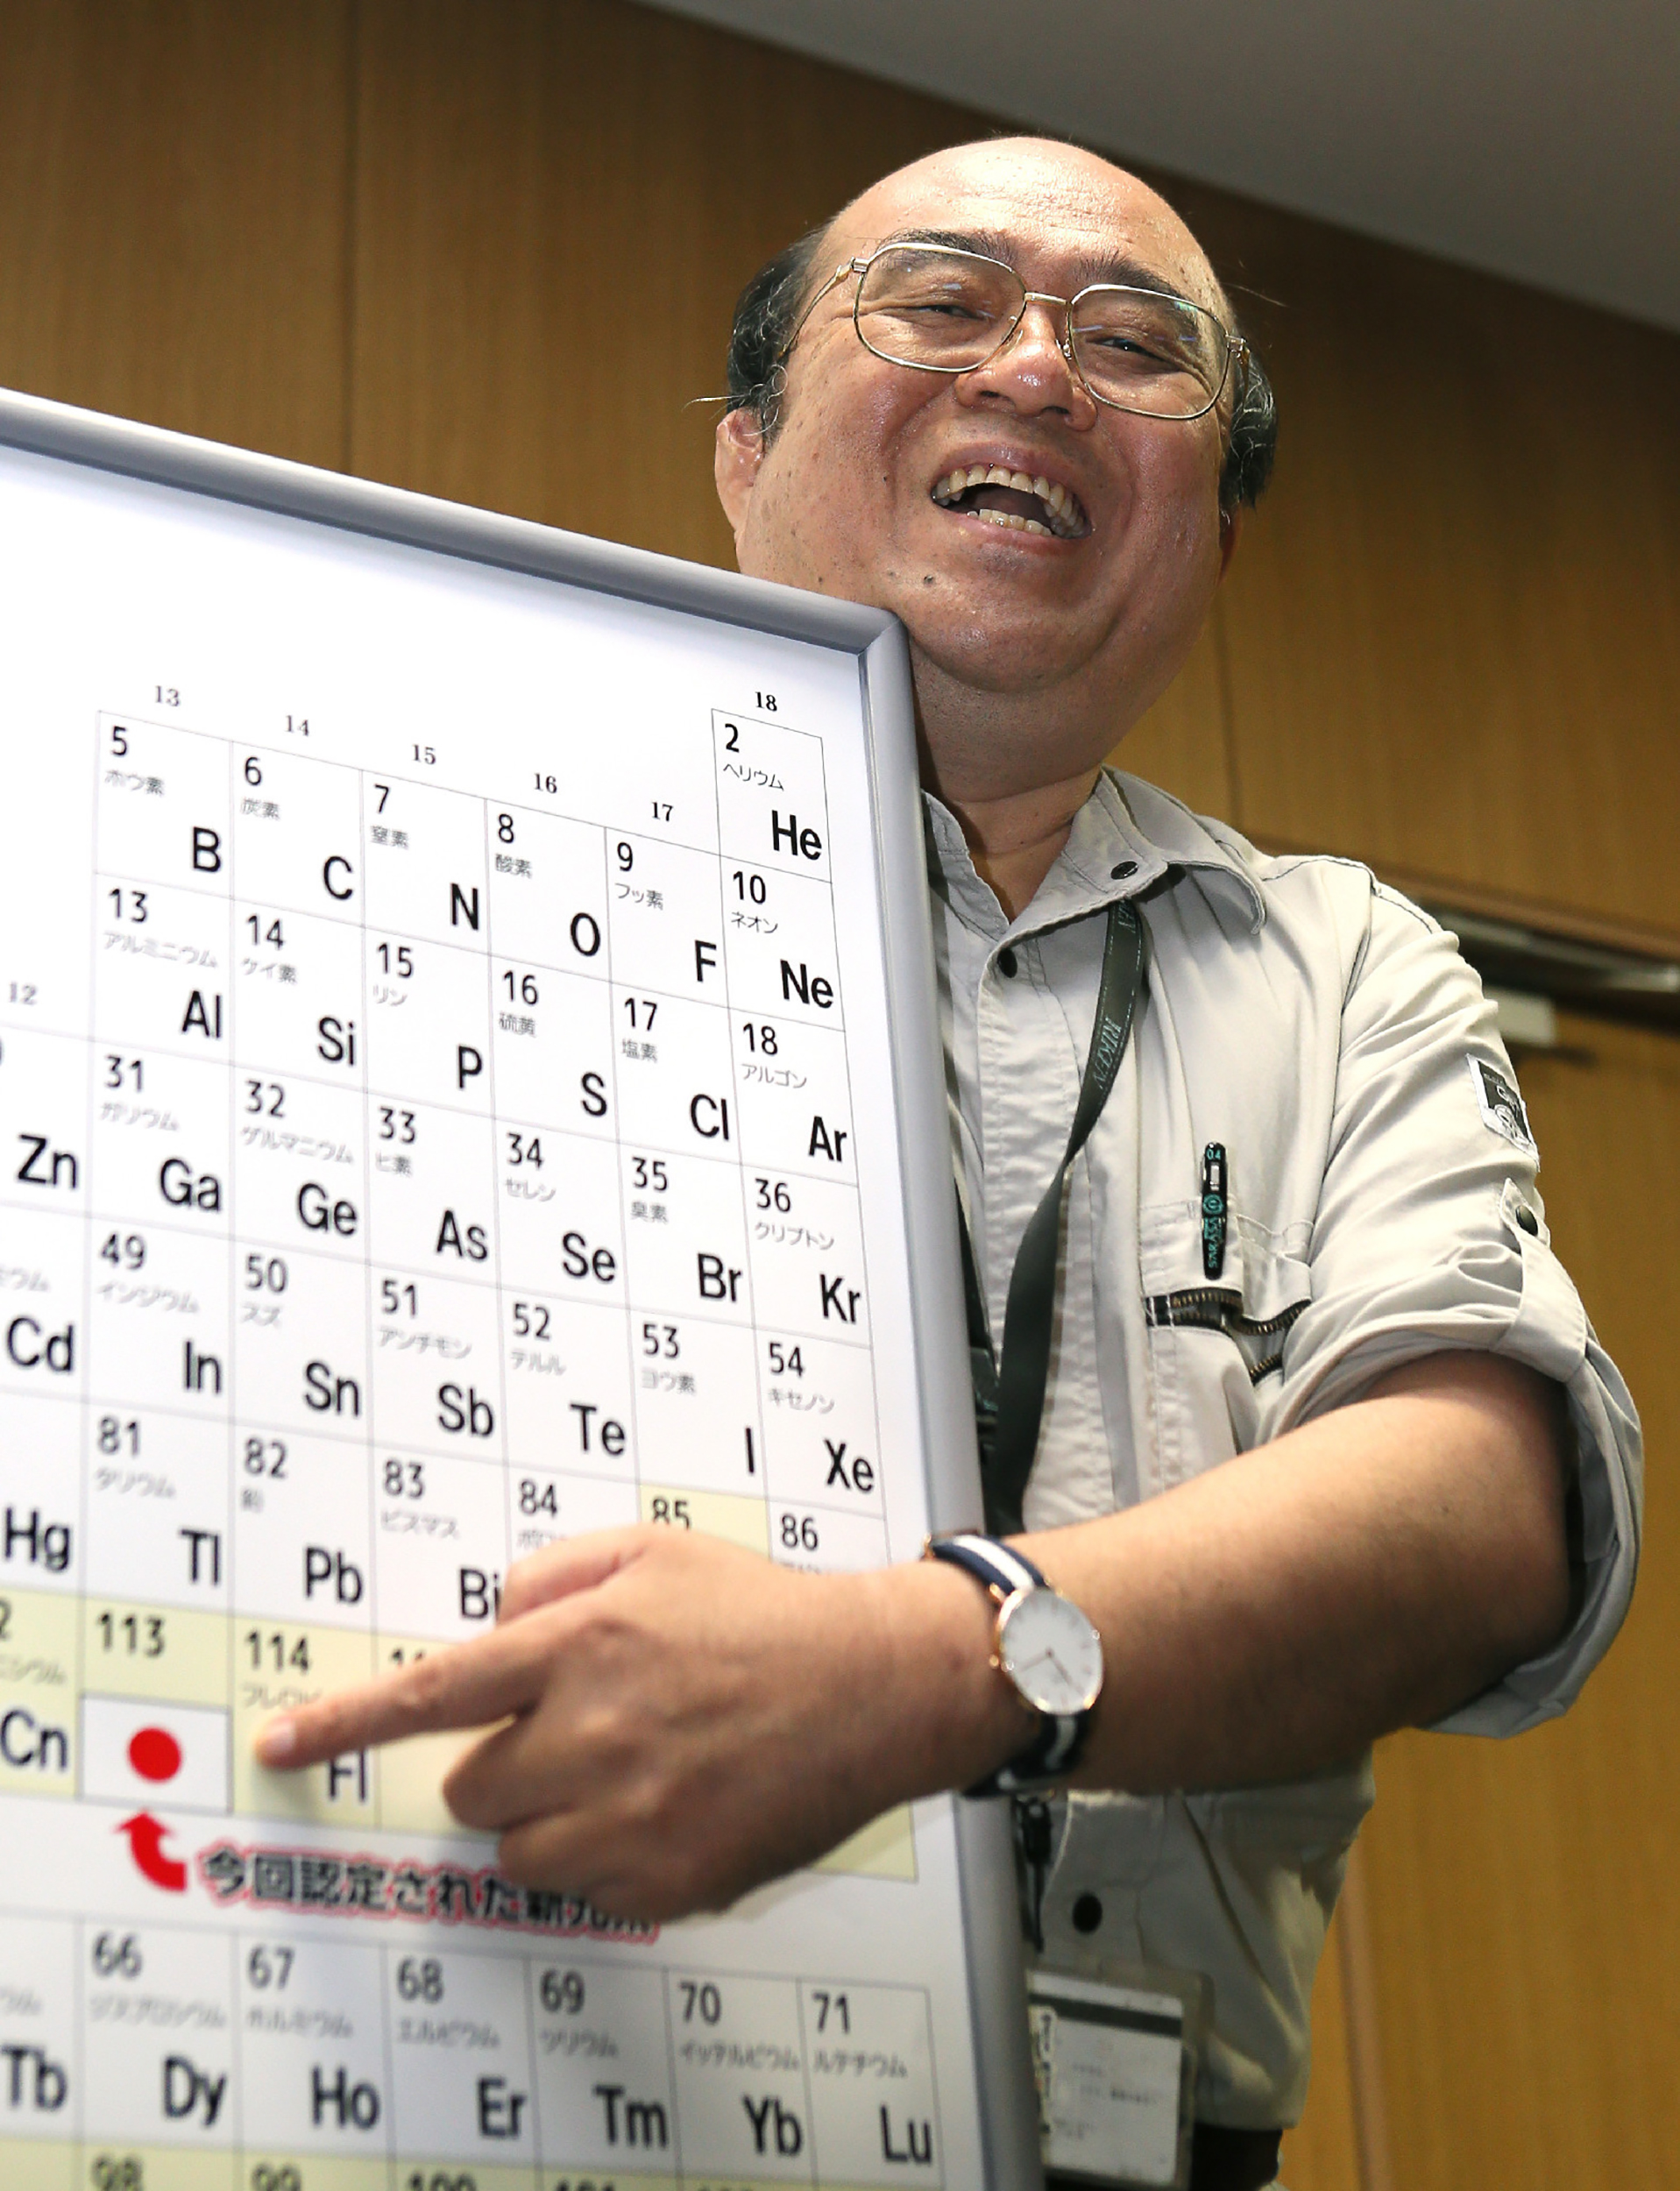 Four additions to periodic table get new names history in the kosuke morita who led the team at riken institute that discovered the superheavy synthetic element gamestrikefo Images